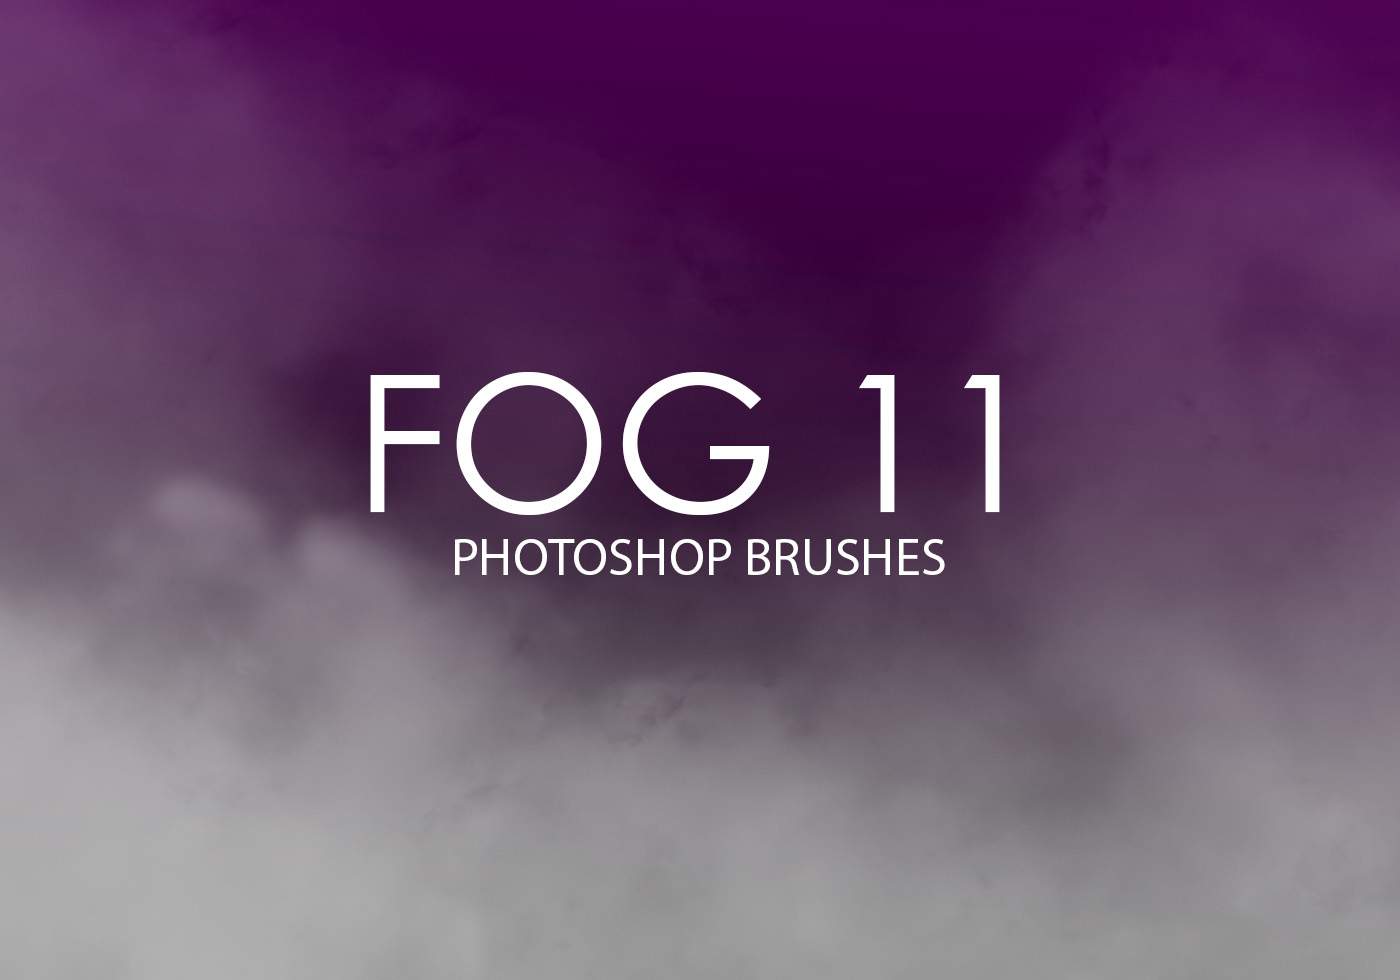 Free Fog Photoshop Brushes on Gas Pack Exhaust